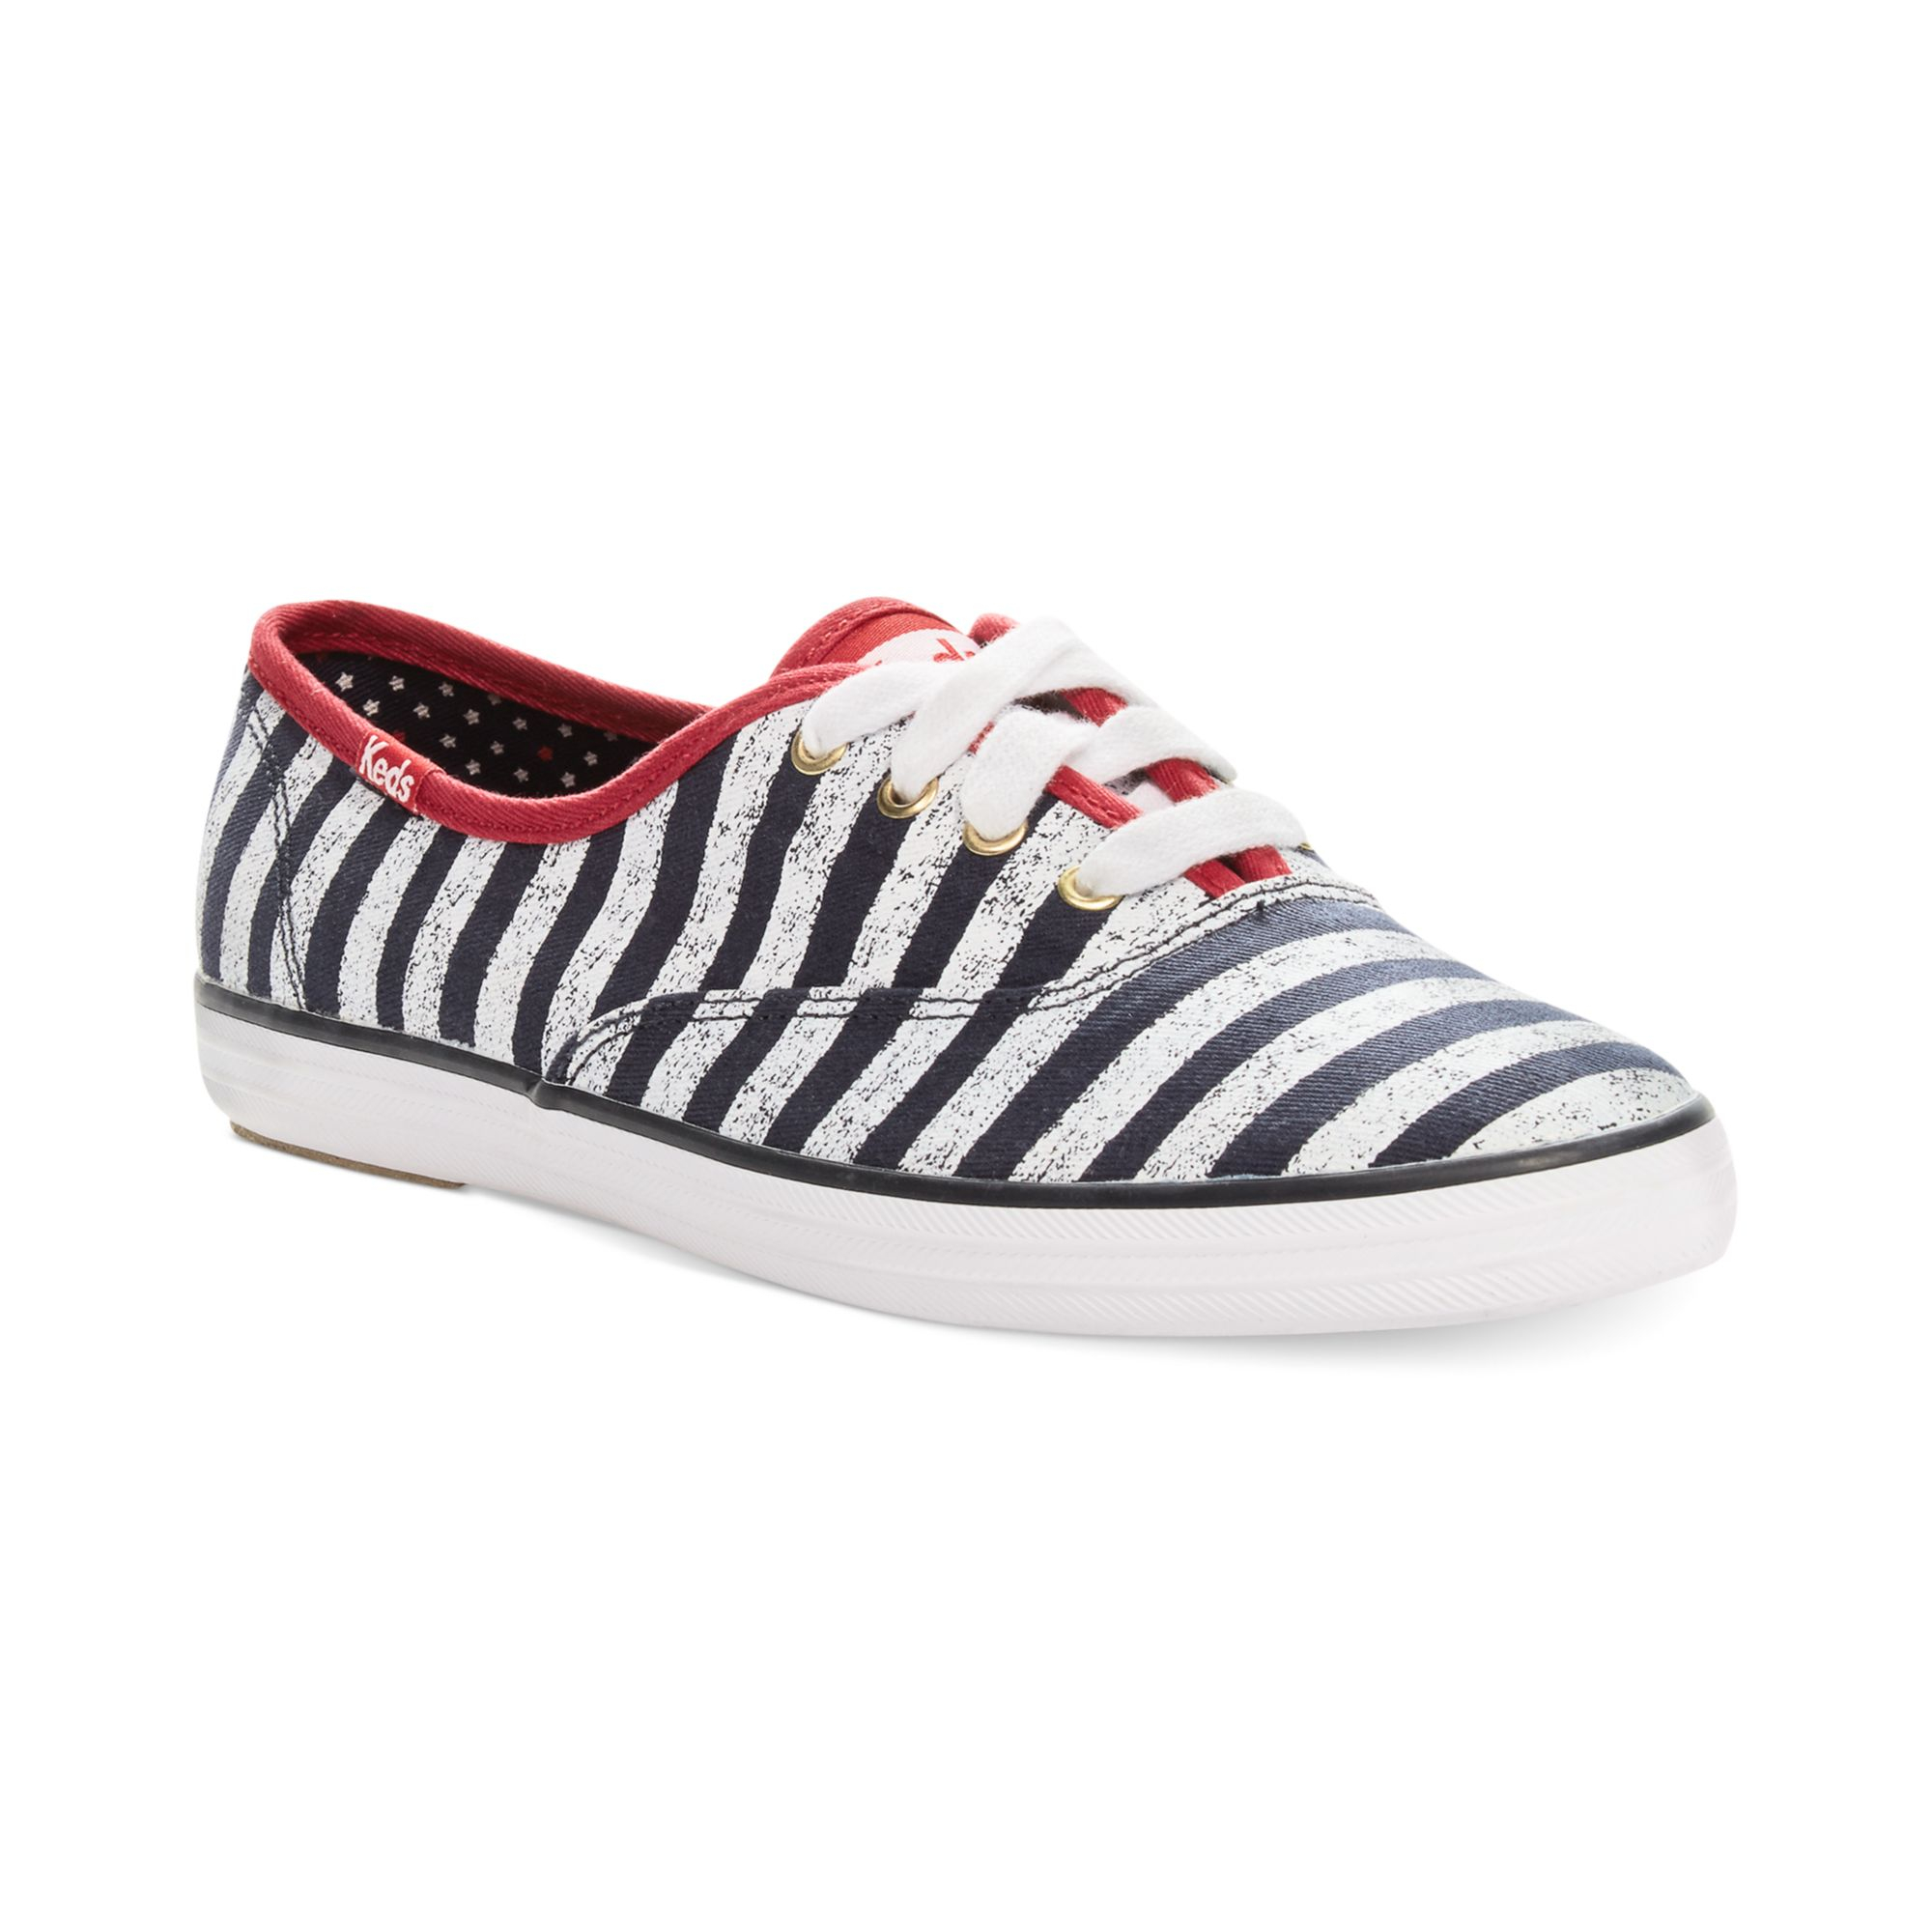 cf5e211b759 Lyst - Keds Champion Patriotic Stripes Sneakers in Blue